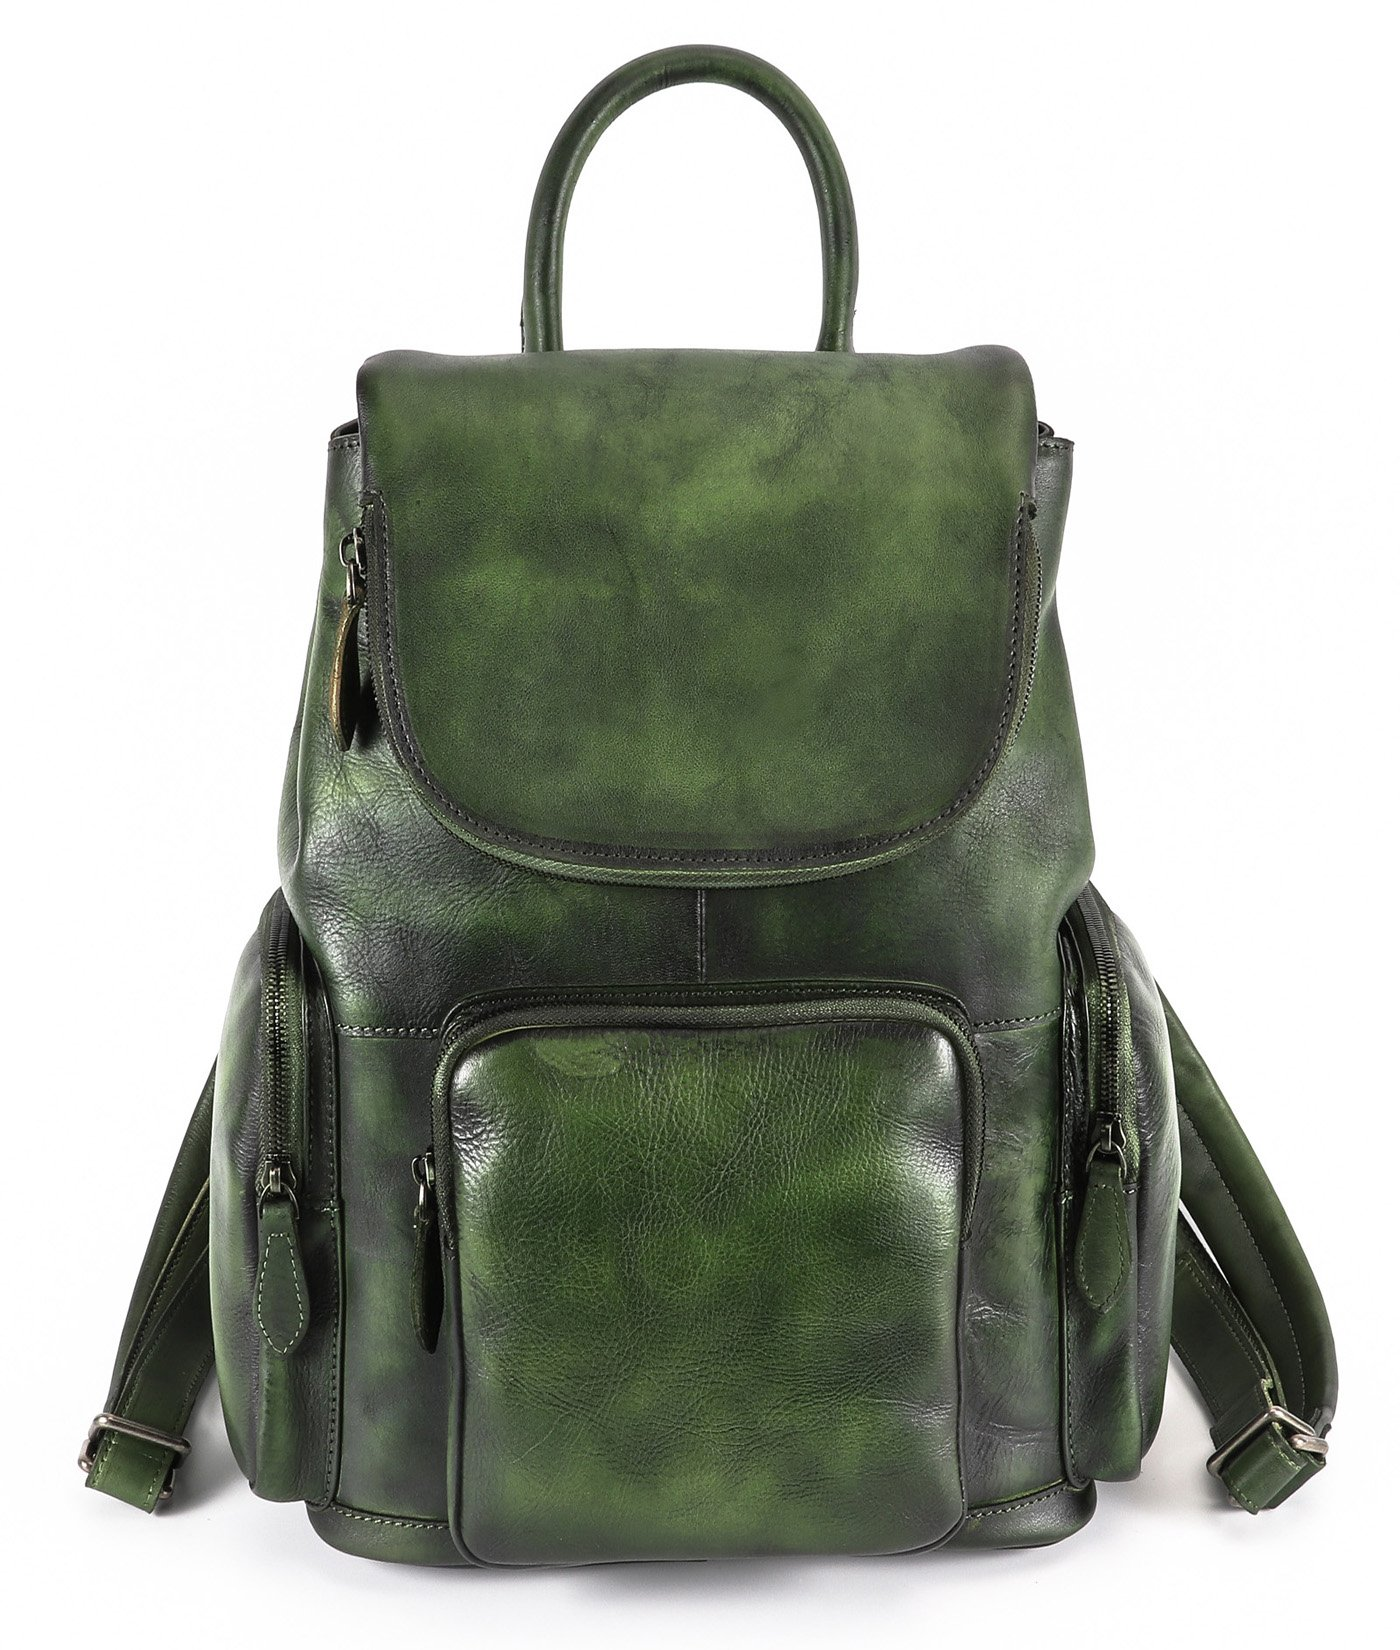 Sophmoda Vintage Style Genuine Cow Leather Backpack Women's Rucksack shoulder bag-A352 (Green) by Sophmoda